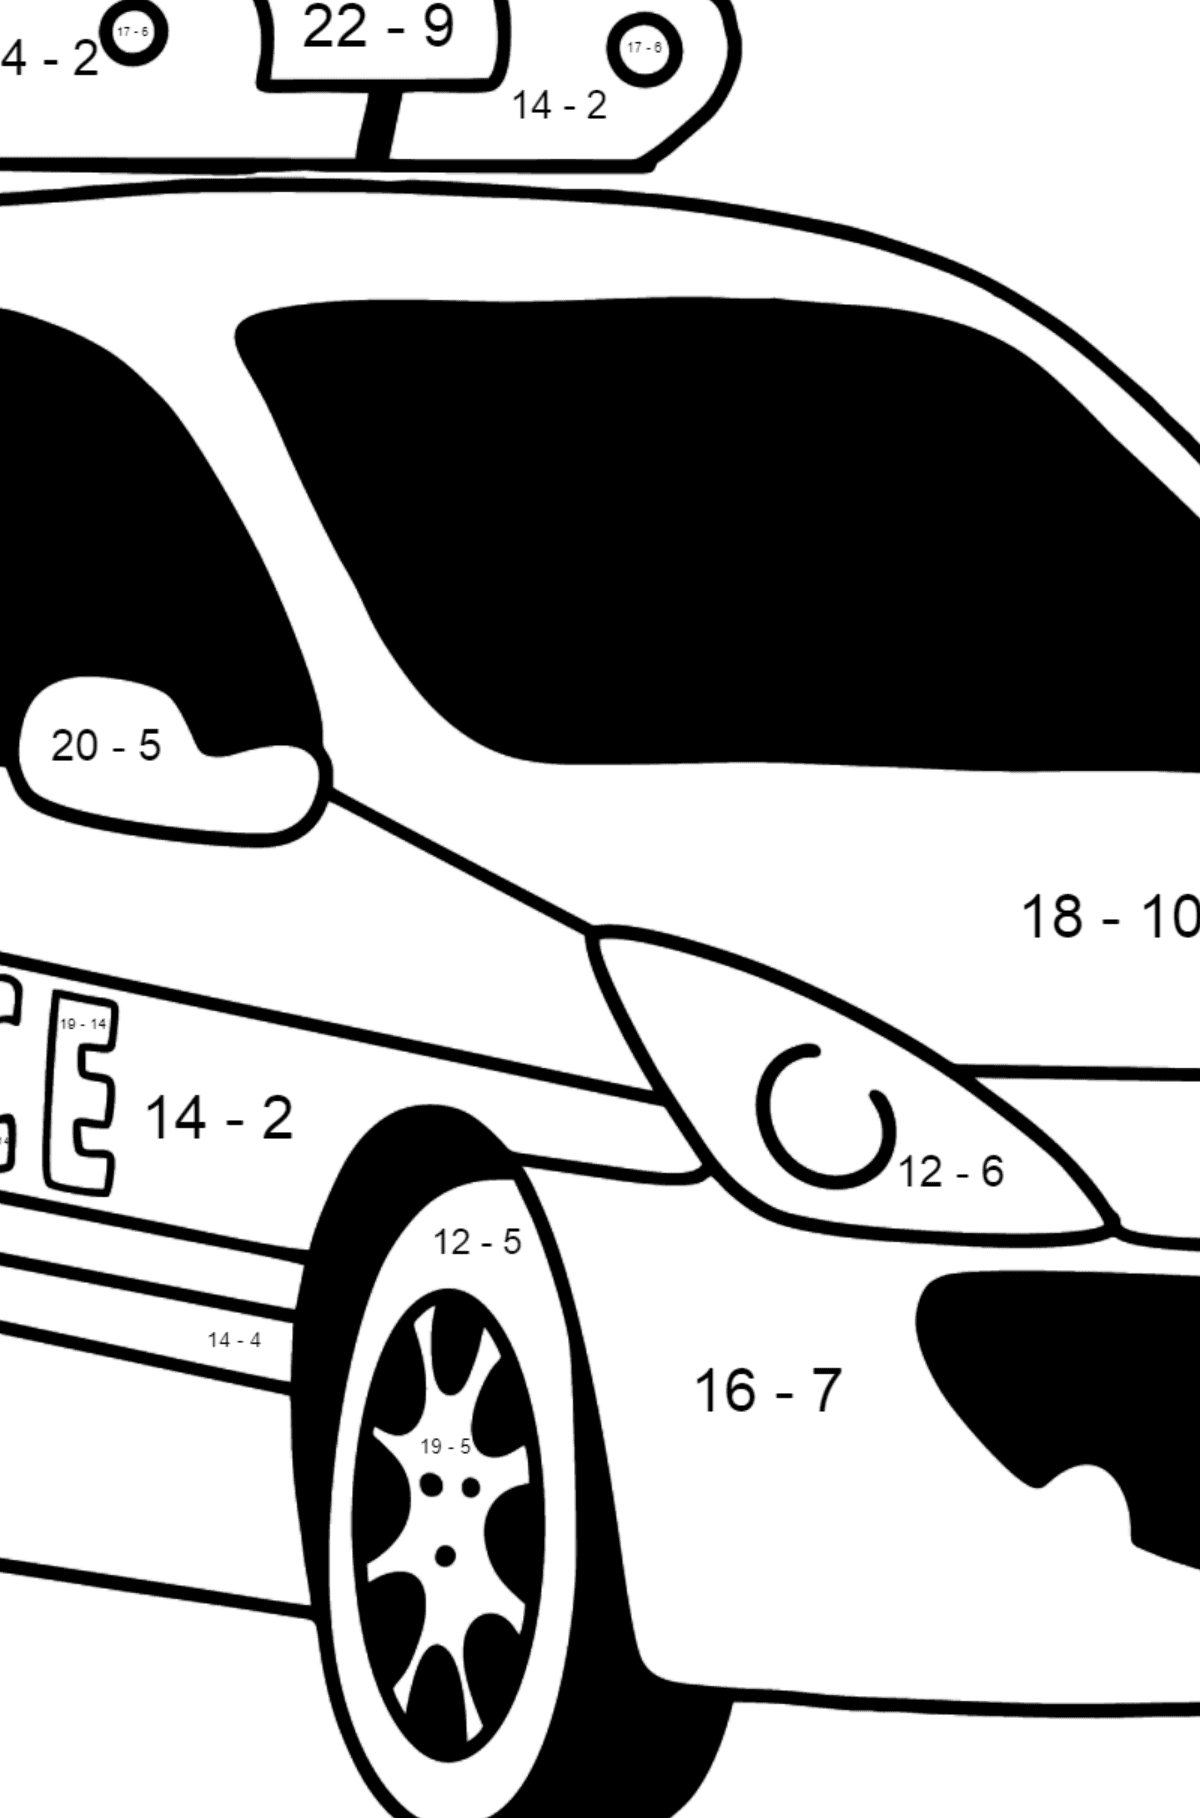 Police Car in France coloring page - Math Coloring - Subtraction for Kids